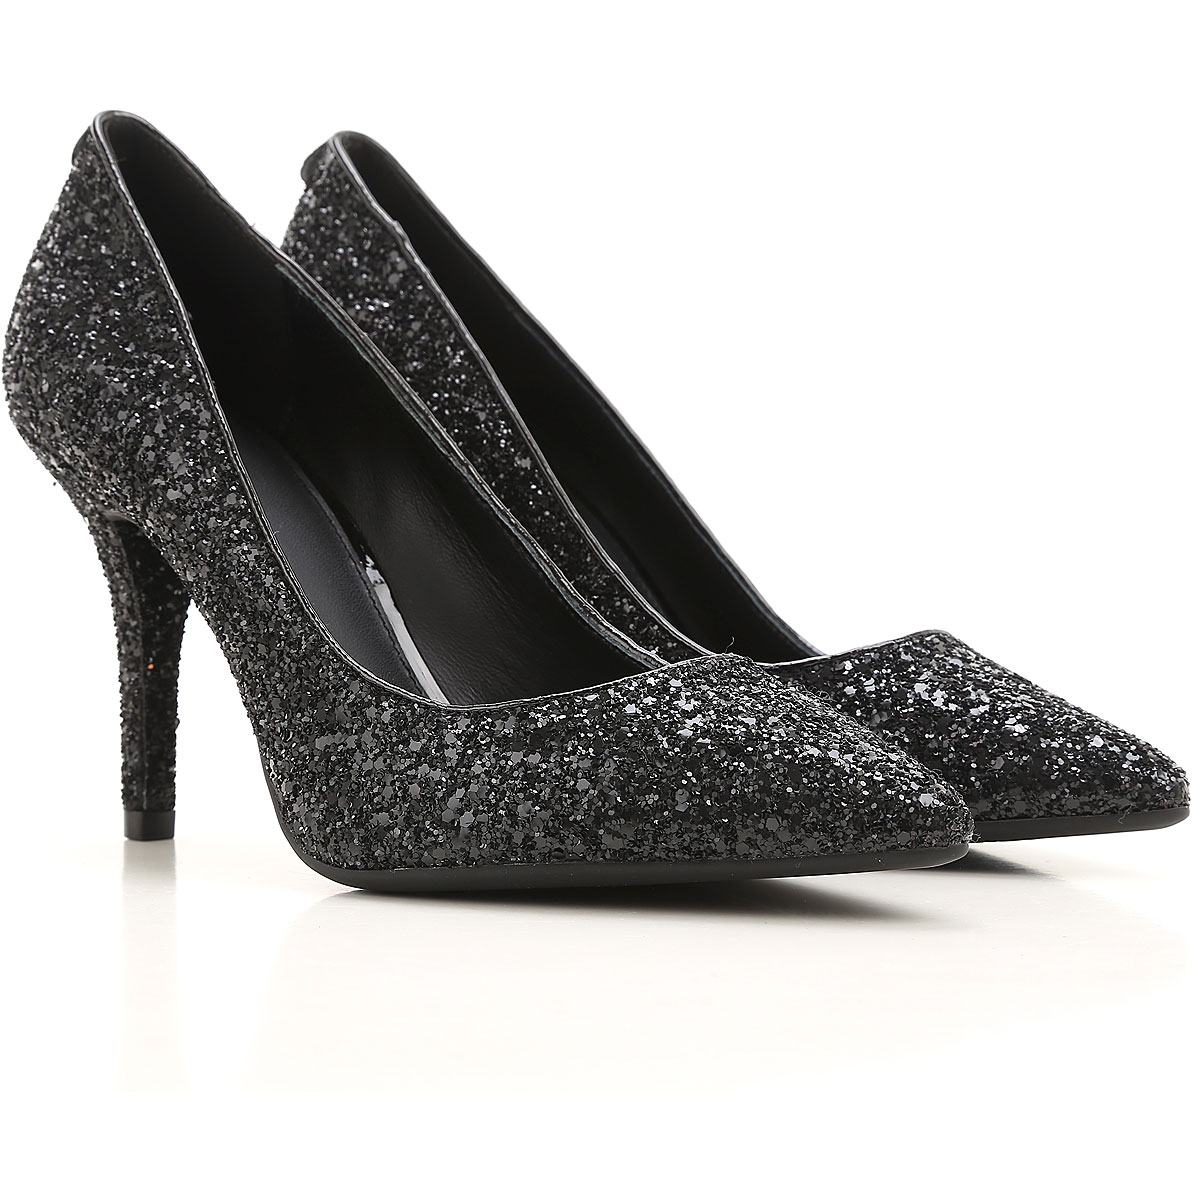 Michael Kors Pumps & High Heels for Women On Sale in Outlet, Black, Leather, 2019, 6.5